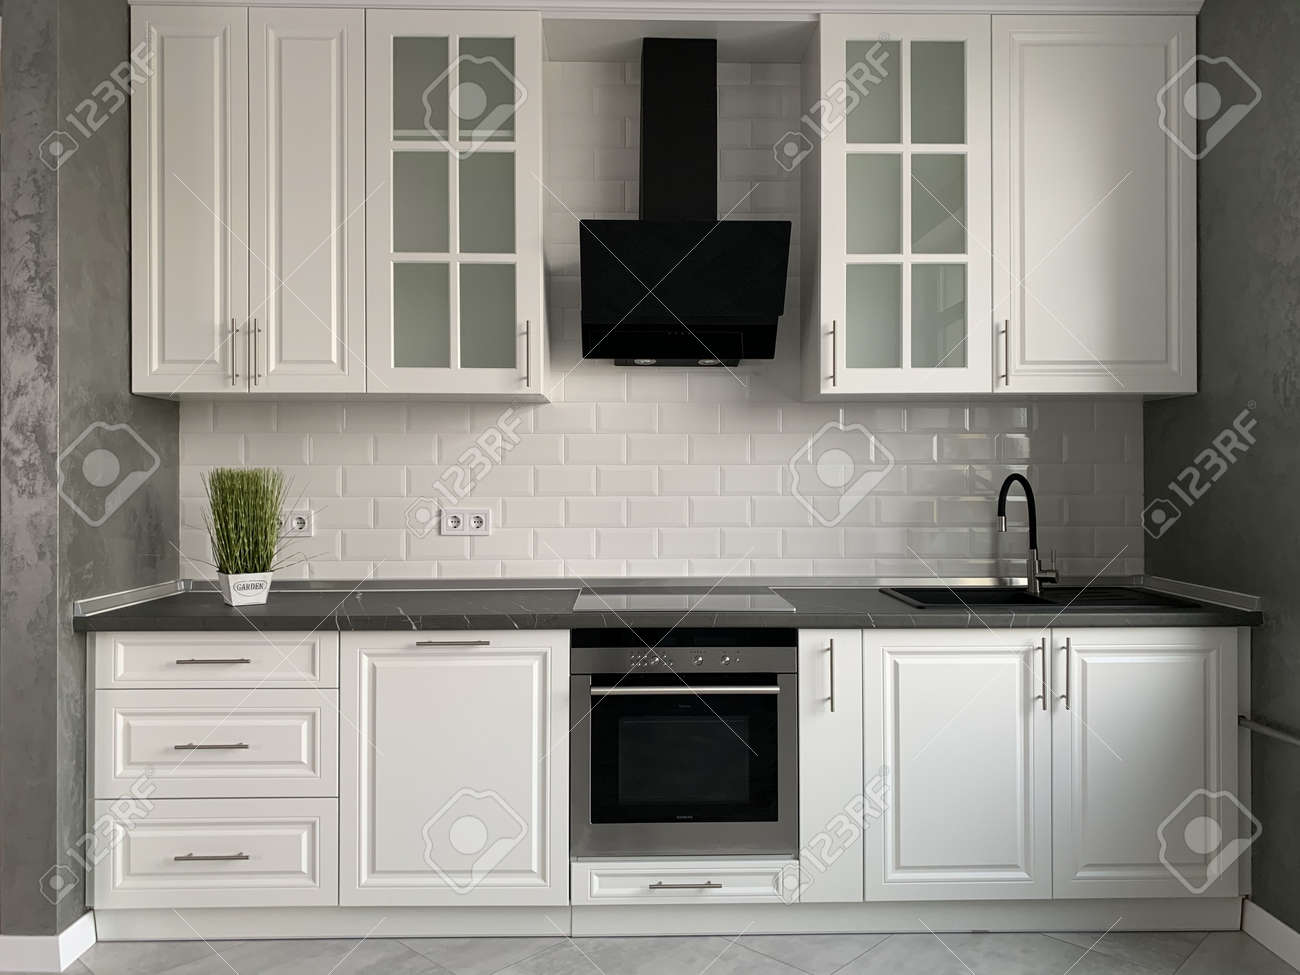 White Kitchen Furniture With Black Countertops New Modern Kitchen Stock Photo Picture And Royalty Free Image Image 138045188